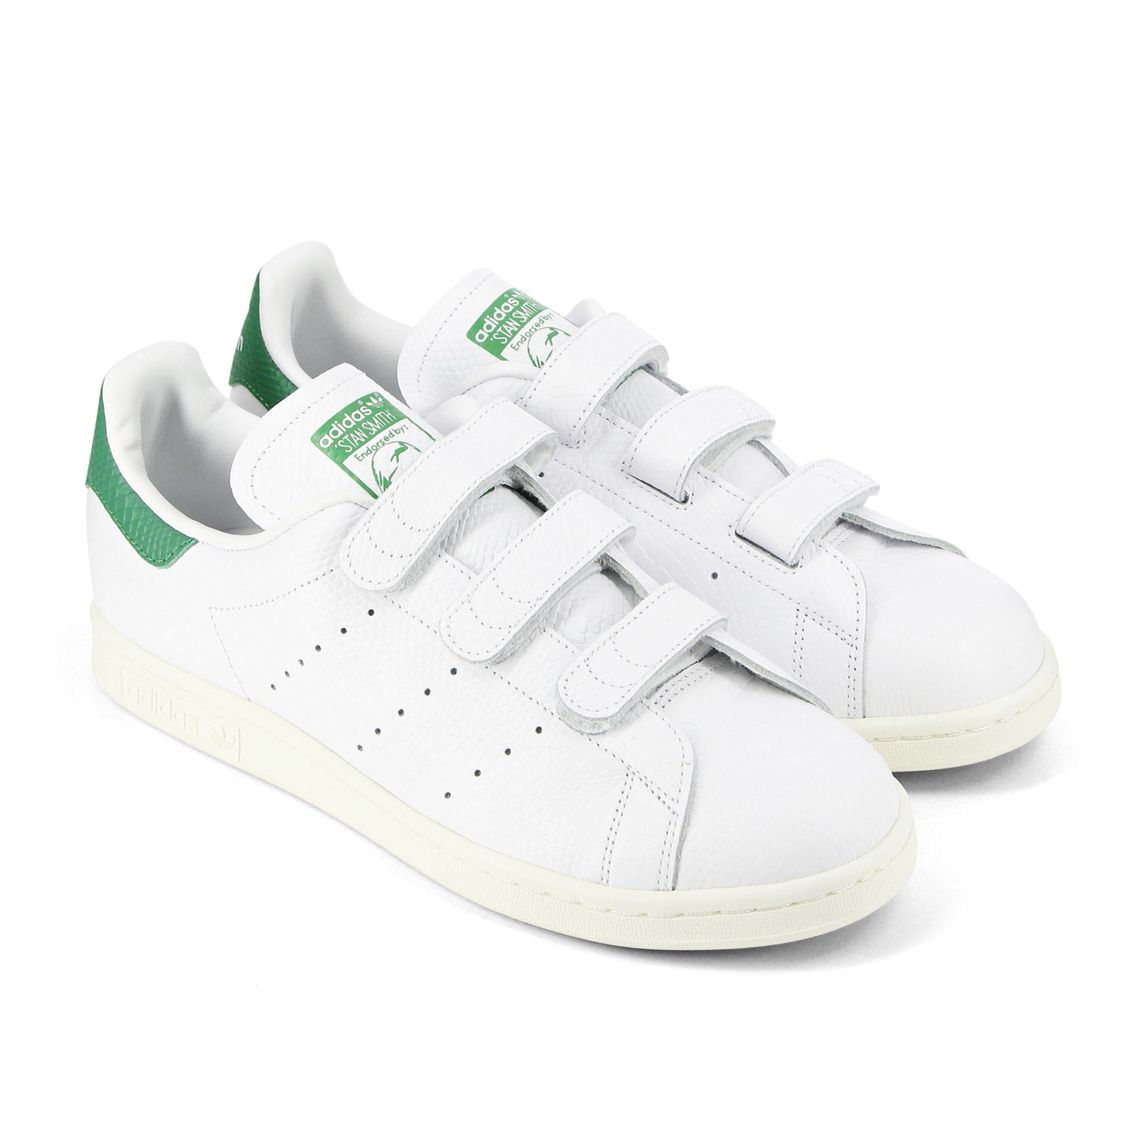 Adidas Stan Smith Vecro White/Green #Adidas #StanSmith #Stan #Velcro #